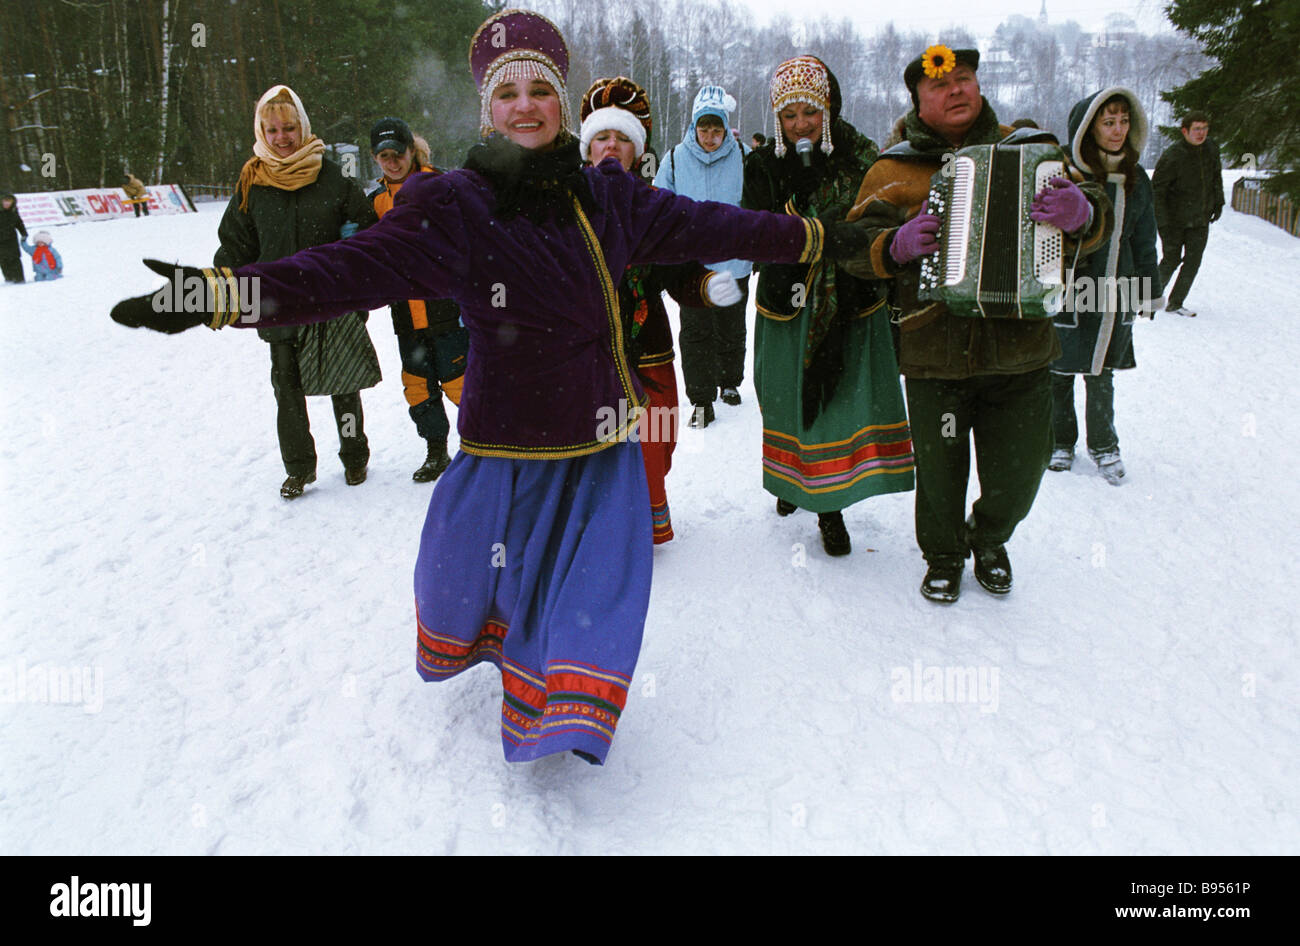 Good by to Shrovetide at Strogino sports base - Stock Image